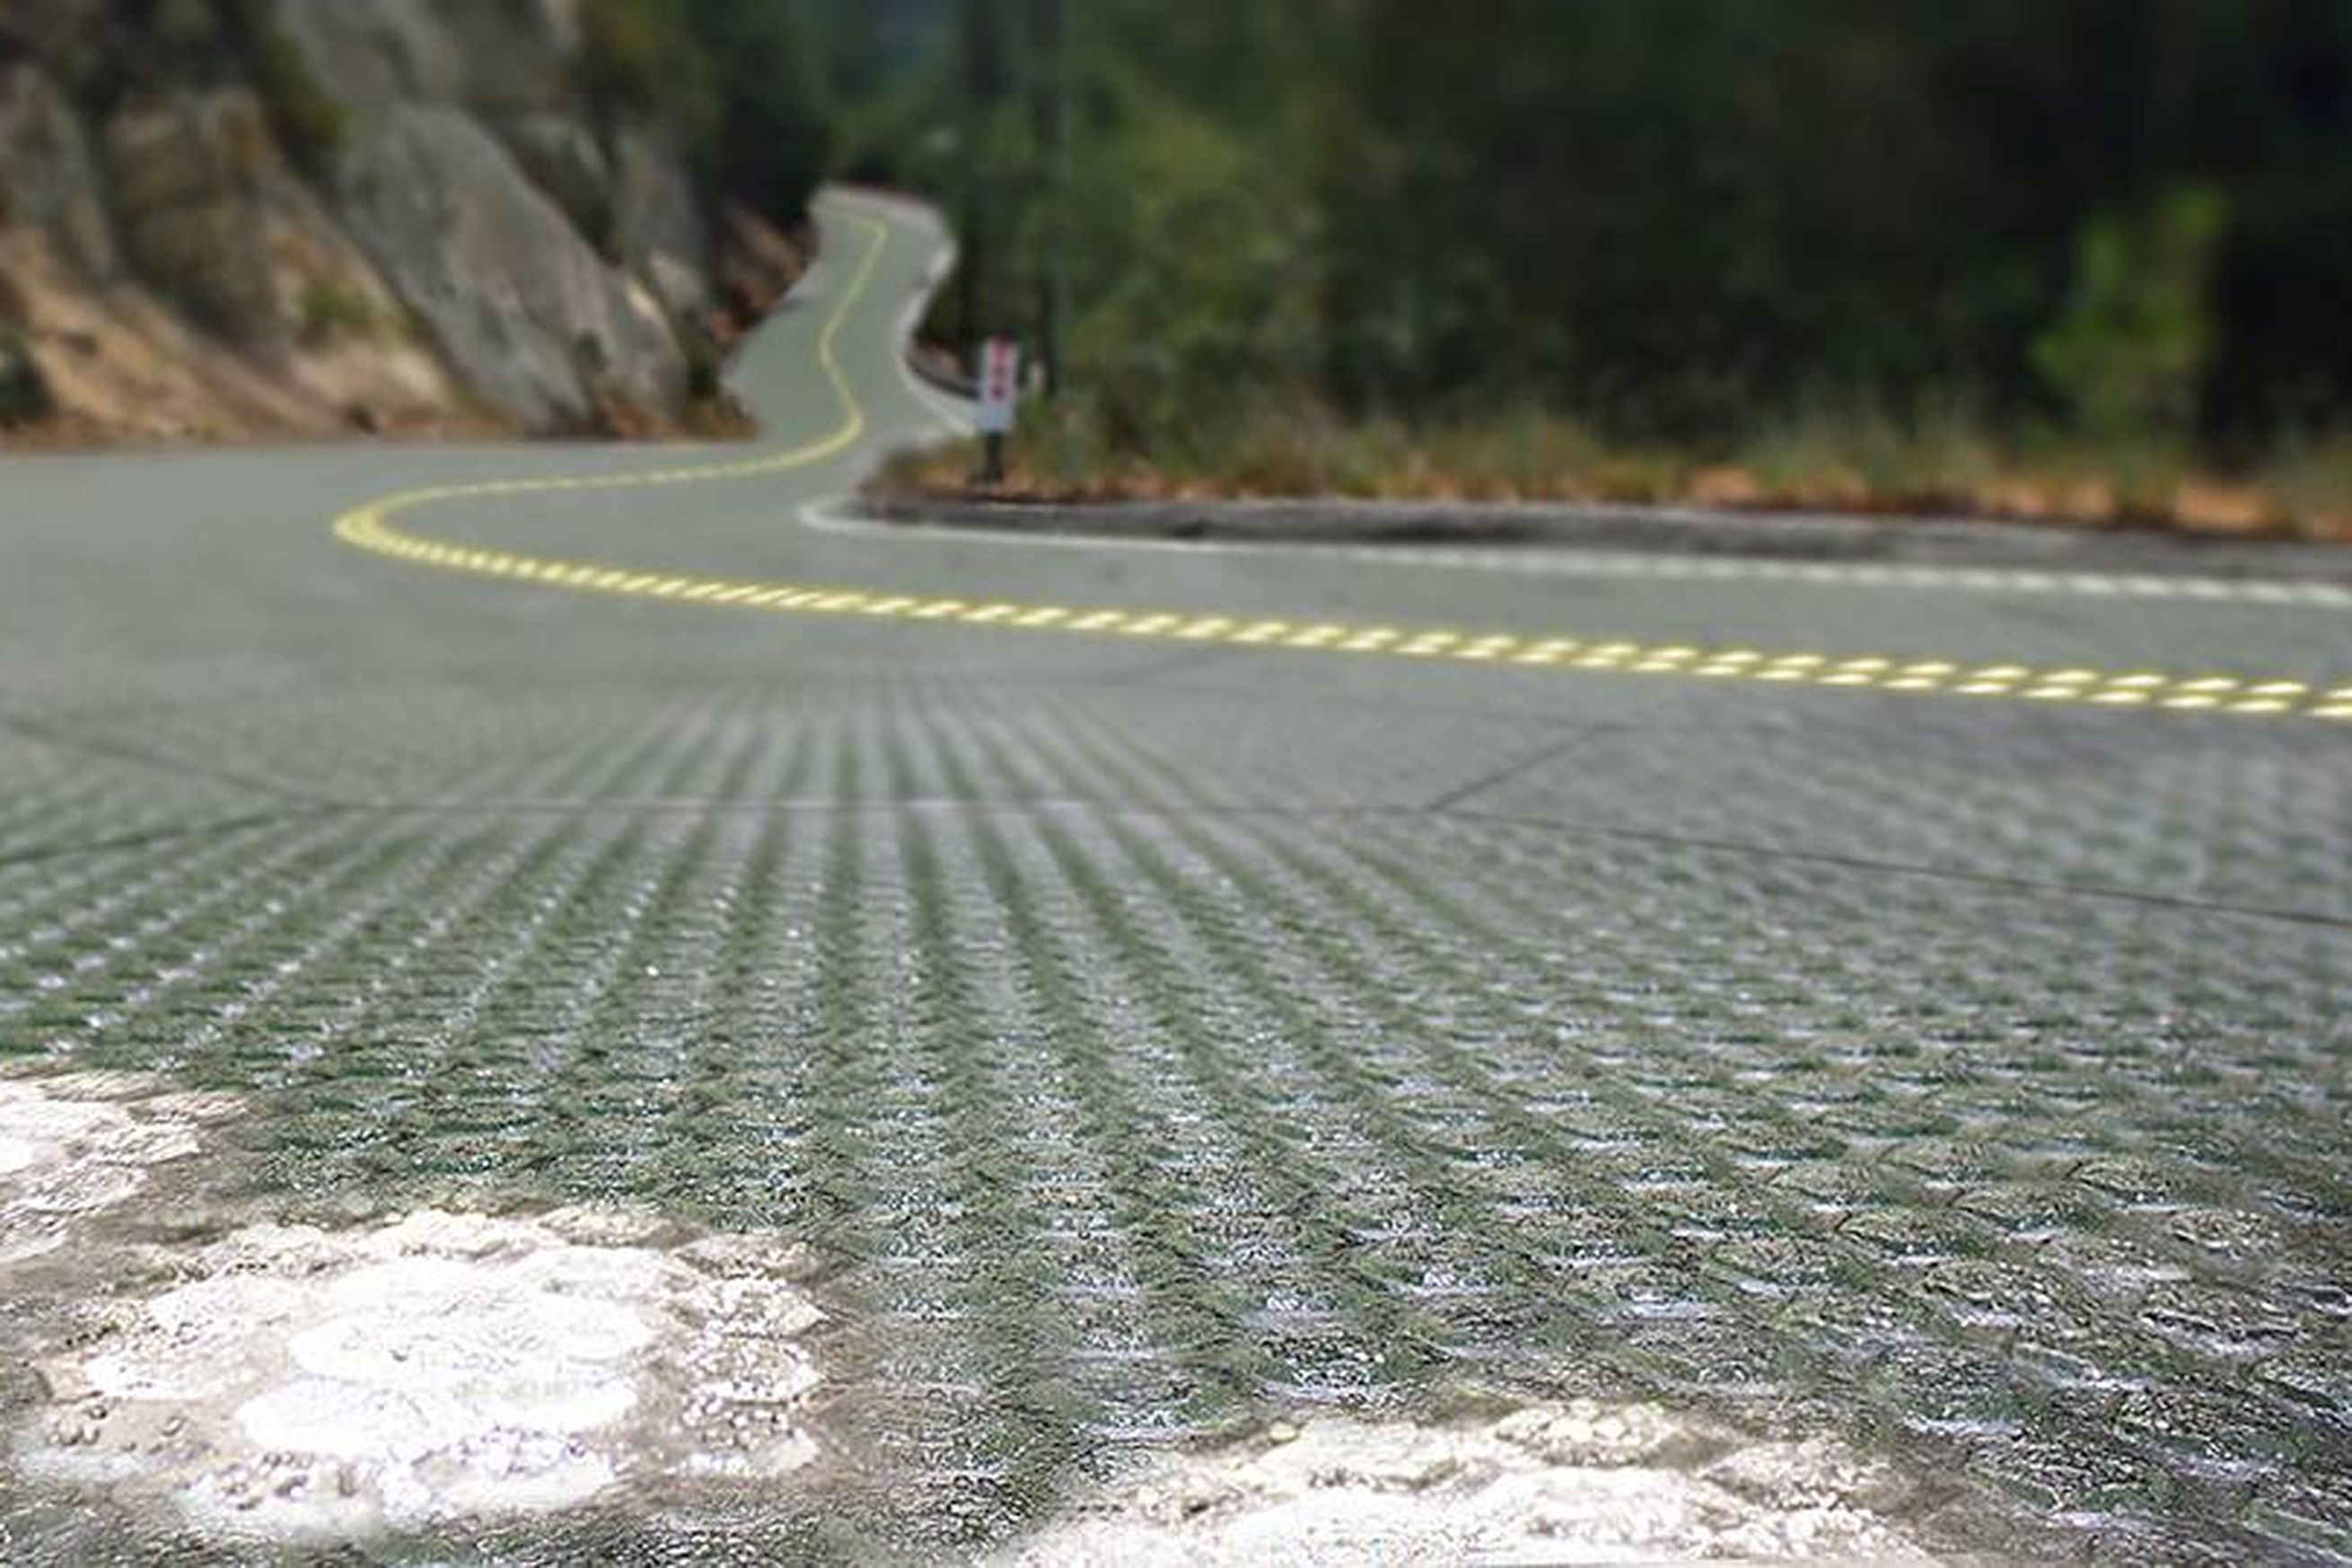 U S 's First Public Solar Road Will Roll Out On Route 66 | man stuff